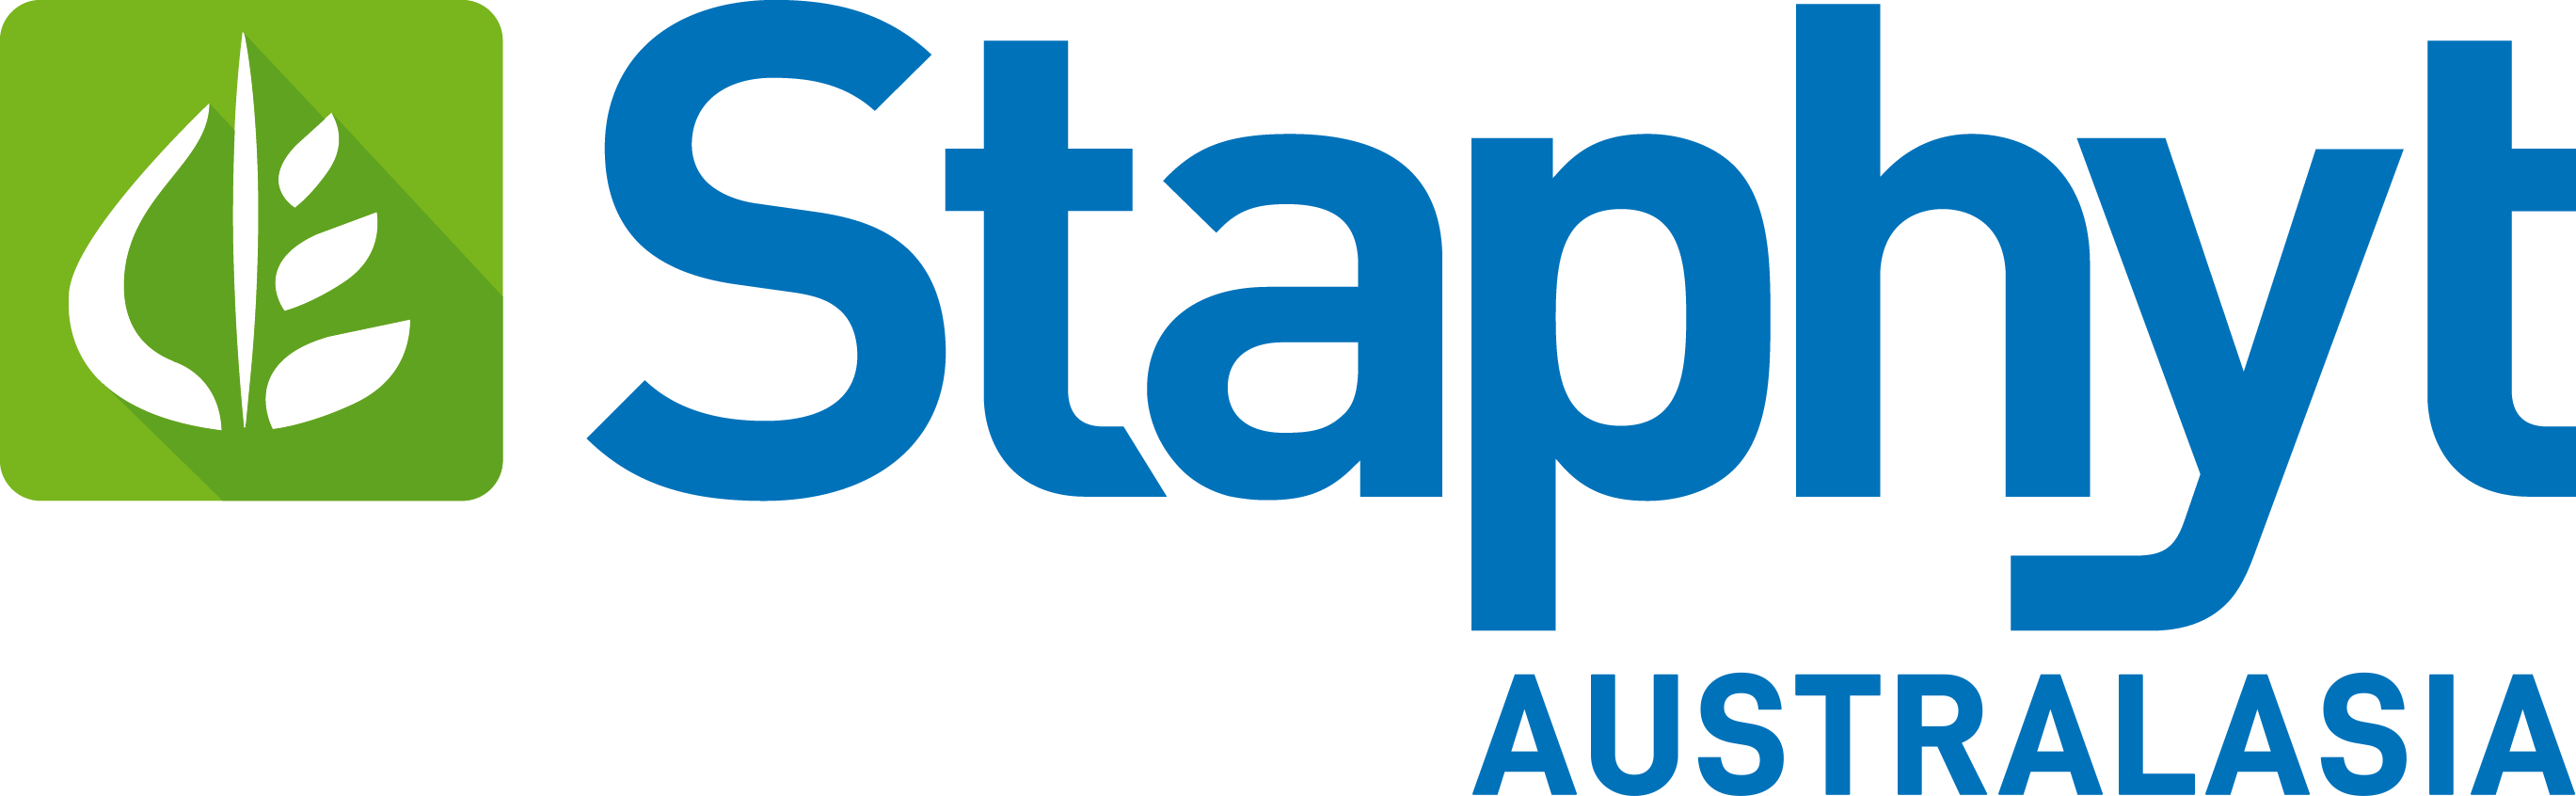 Logo Staphyt Australasia: Australia and New Zealand